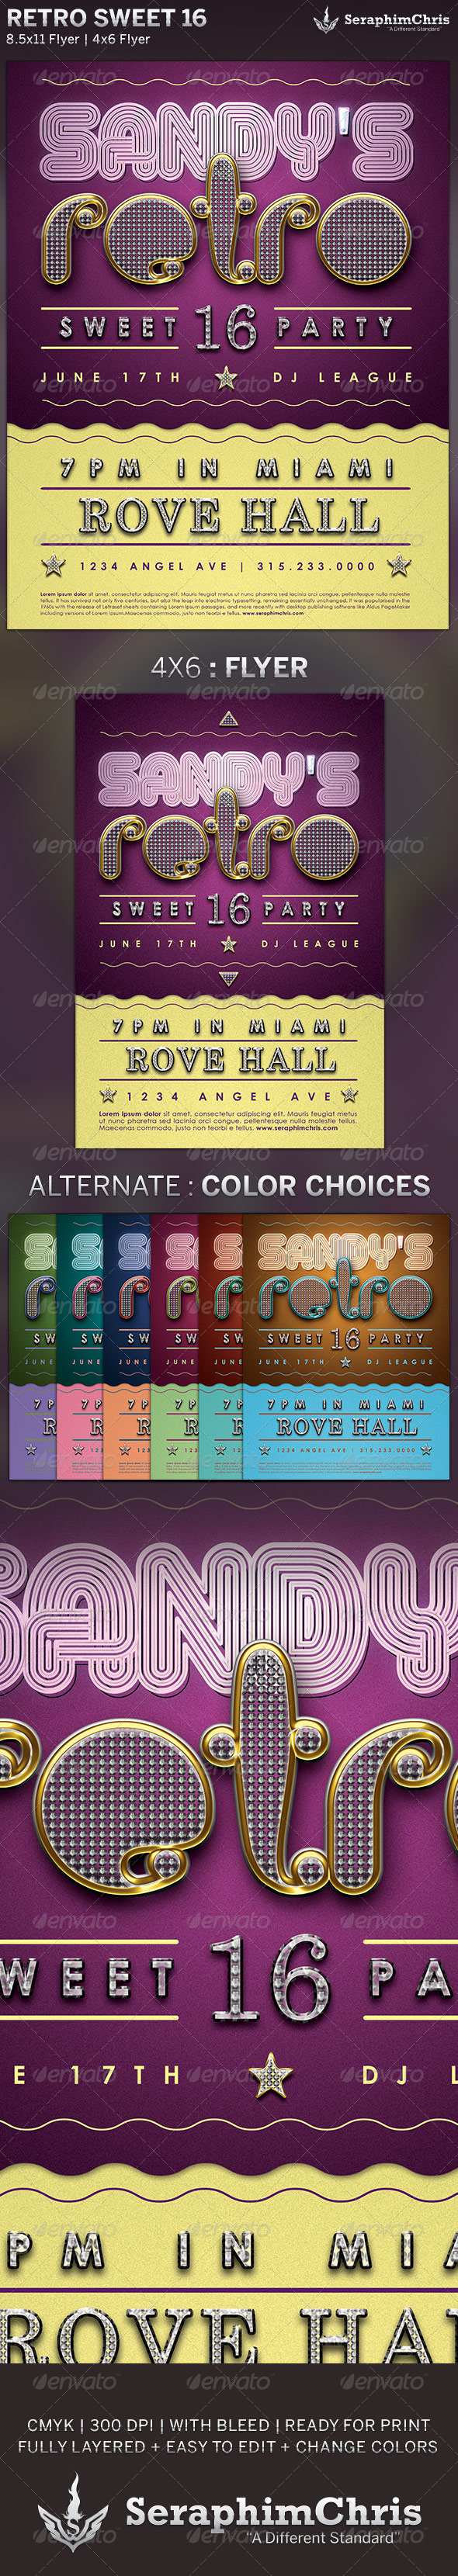 GraphicRiver Retro Sweet 16 Party Flyer Template 5046655